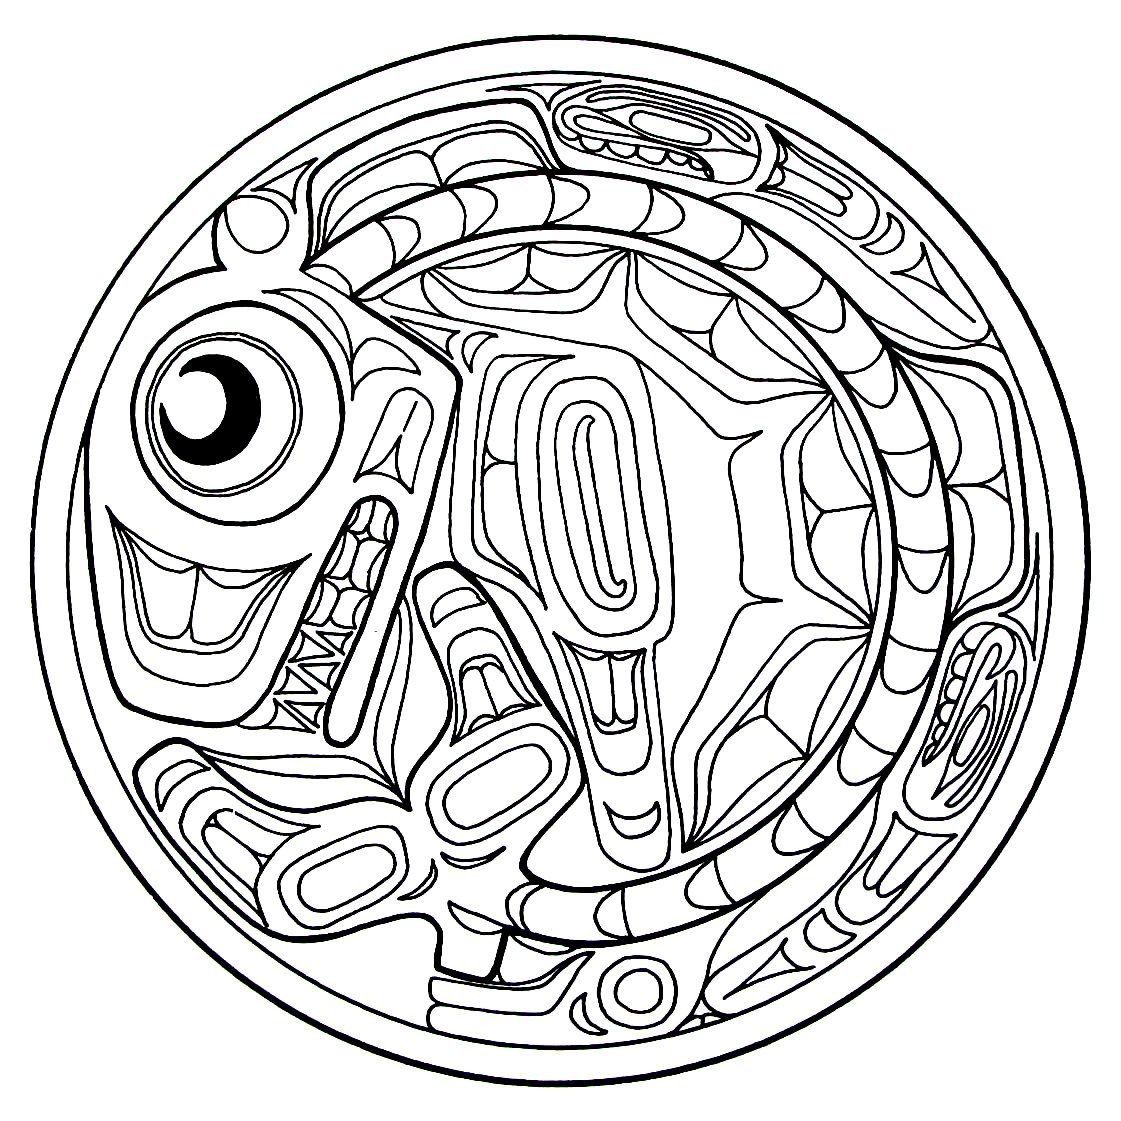 A Killer Whale From The Haida Indians Printable Coloring Book Page